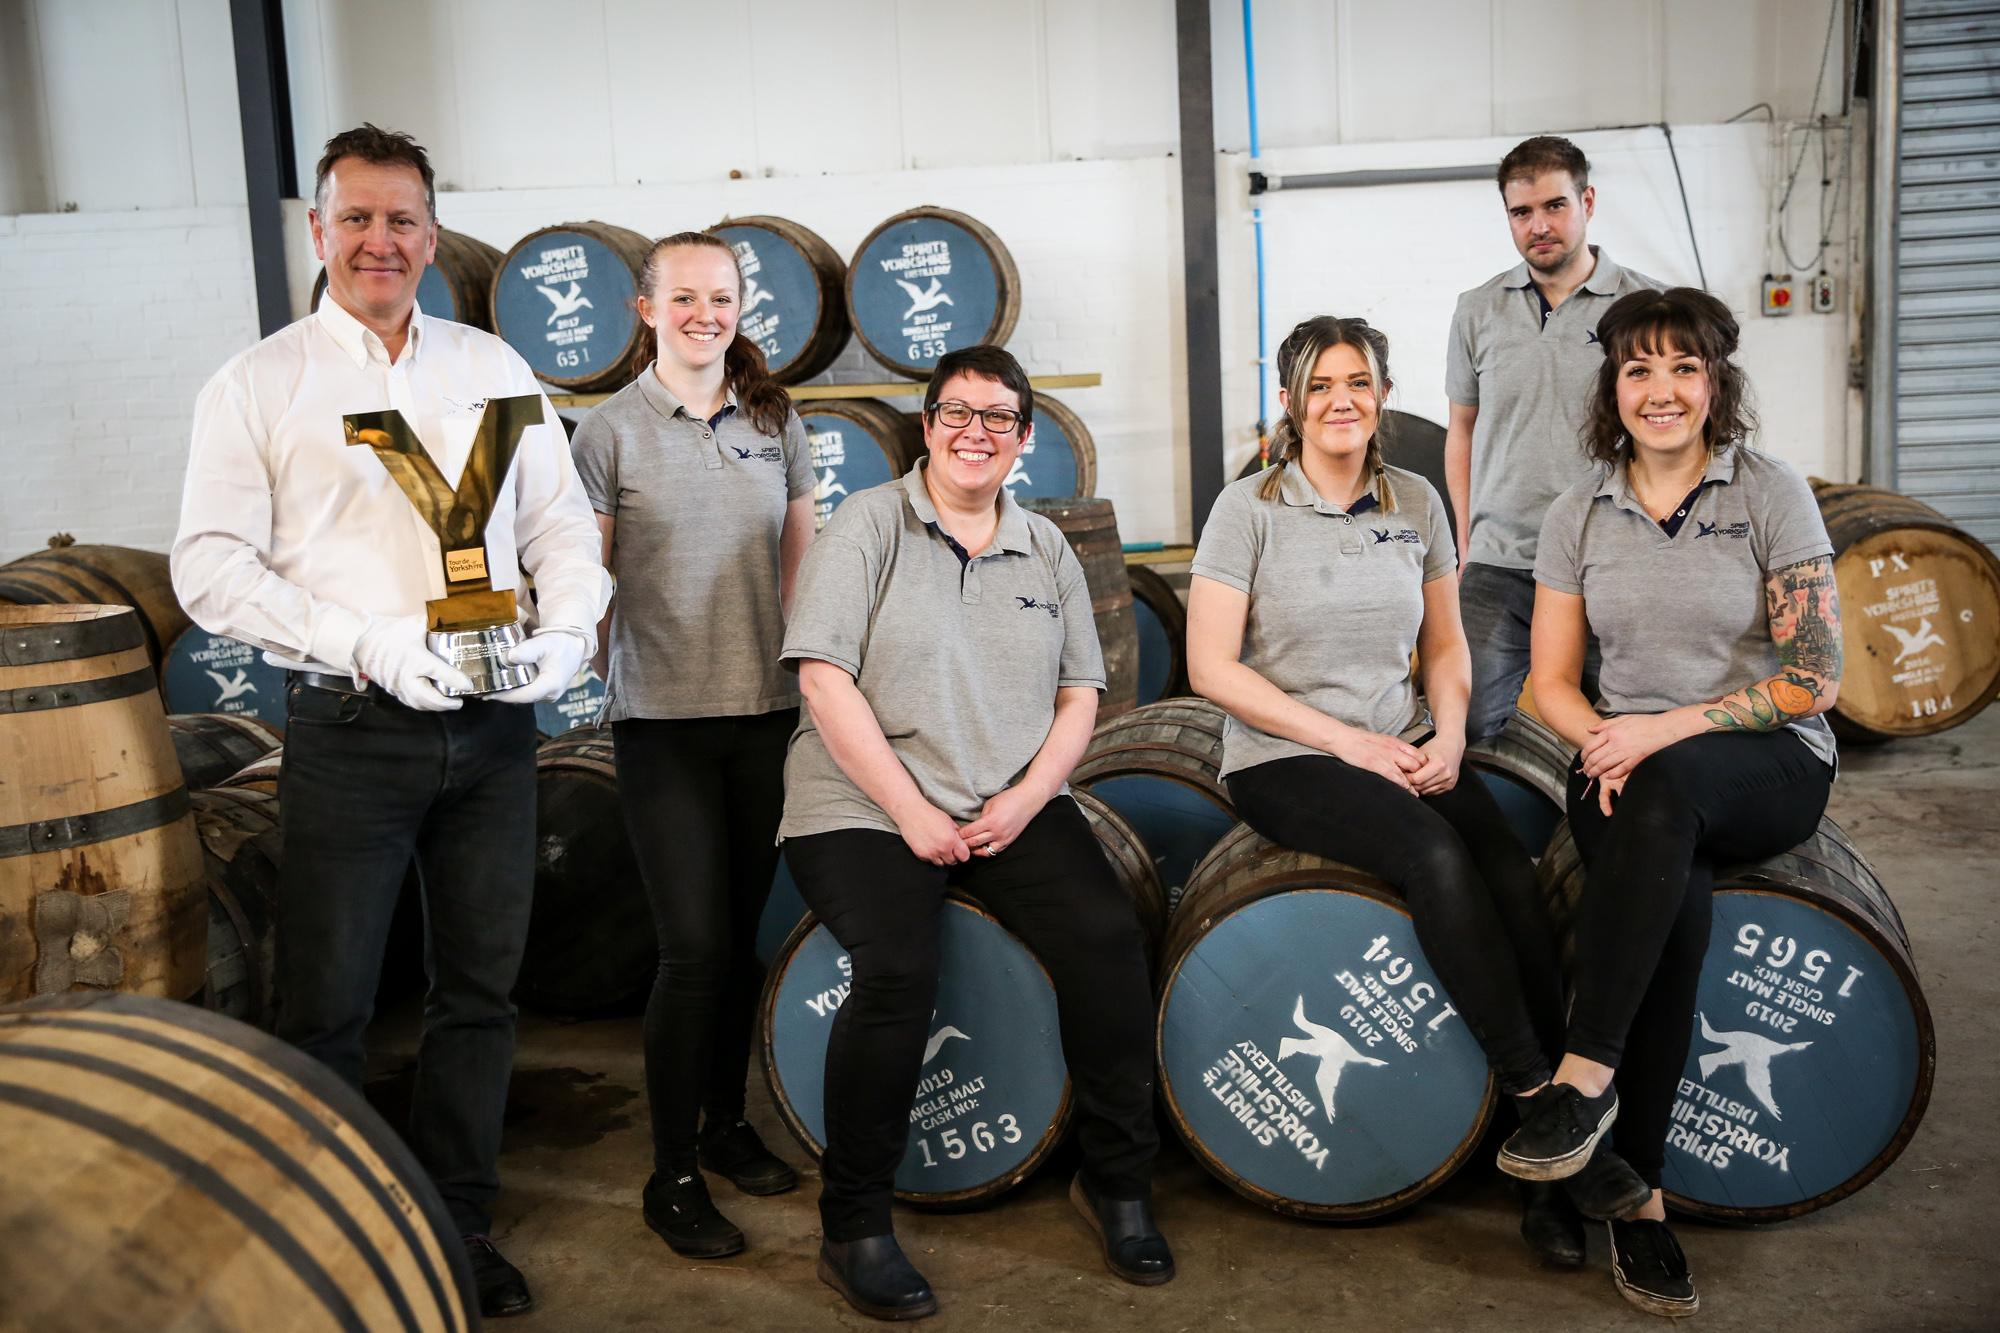 Picture of Spirit of Yorkshire Distillery owner, David Thompson, with his team and the Tour de Yorkshire trophy. Picture credit: Ceri Oakes Photography